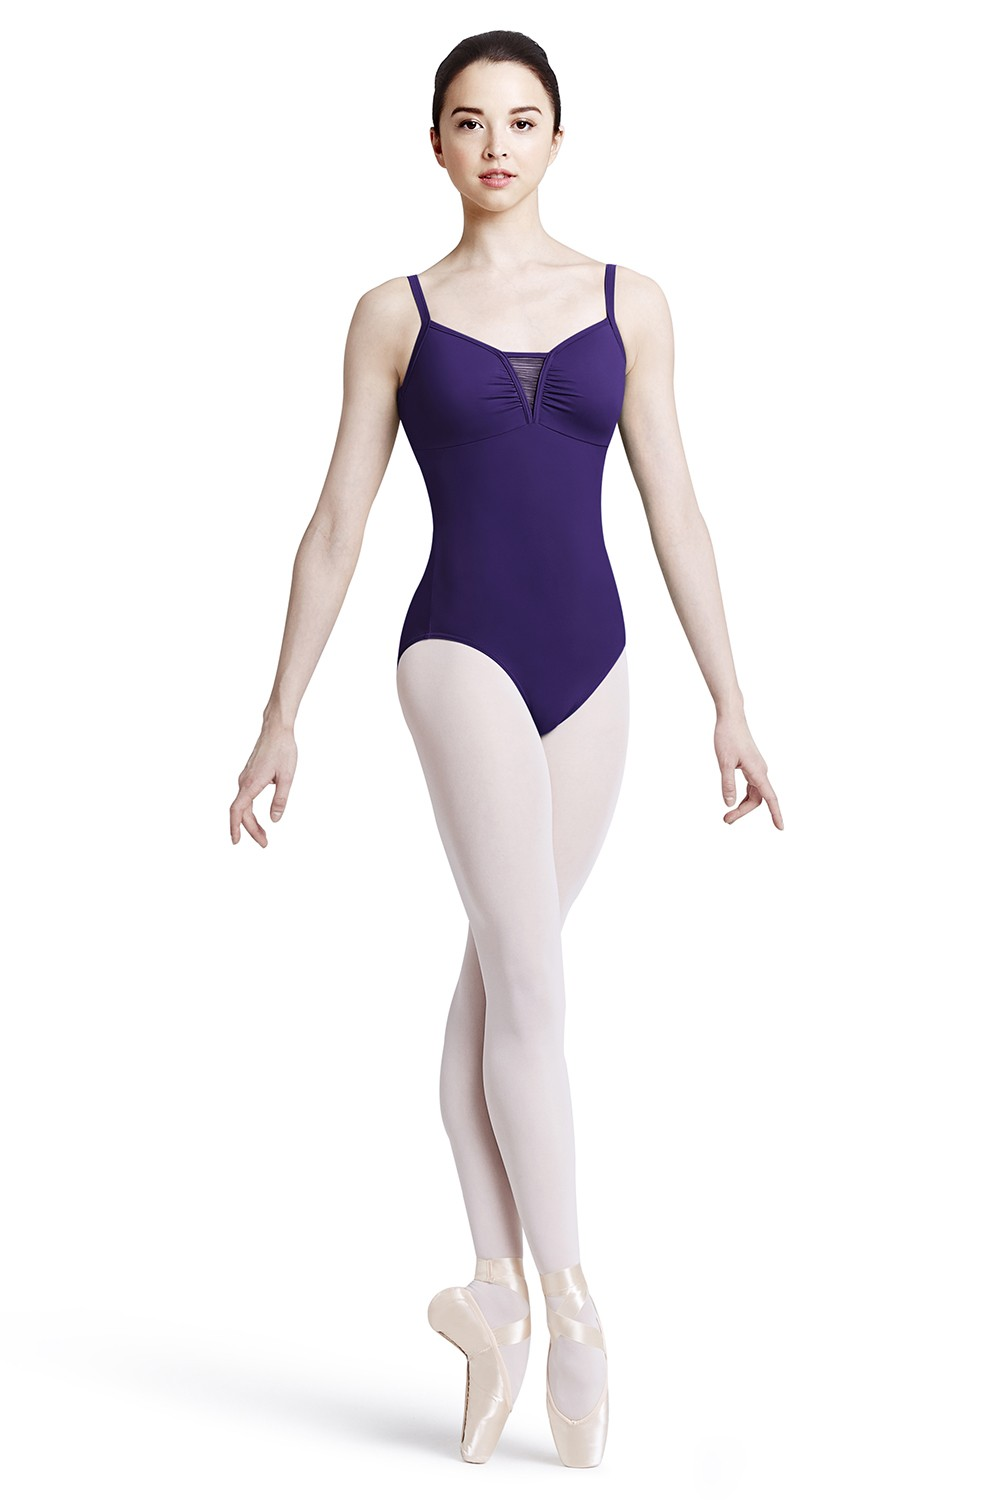 Body A Spalline Sottili Con Scollo A V Women's Dance Leotards